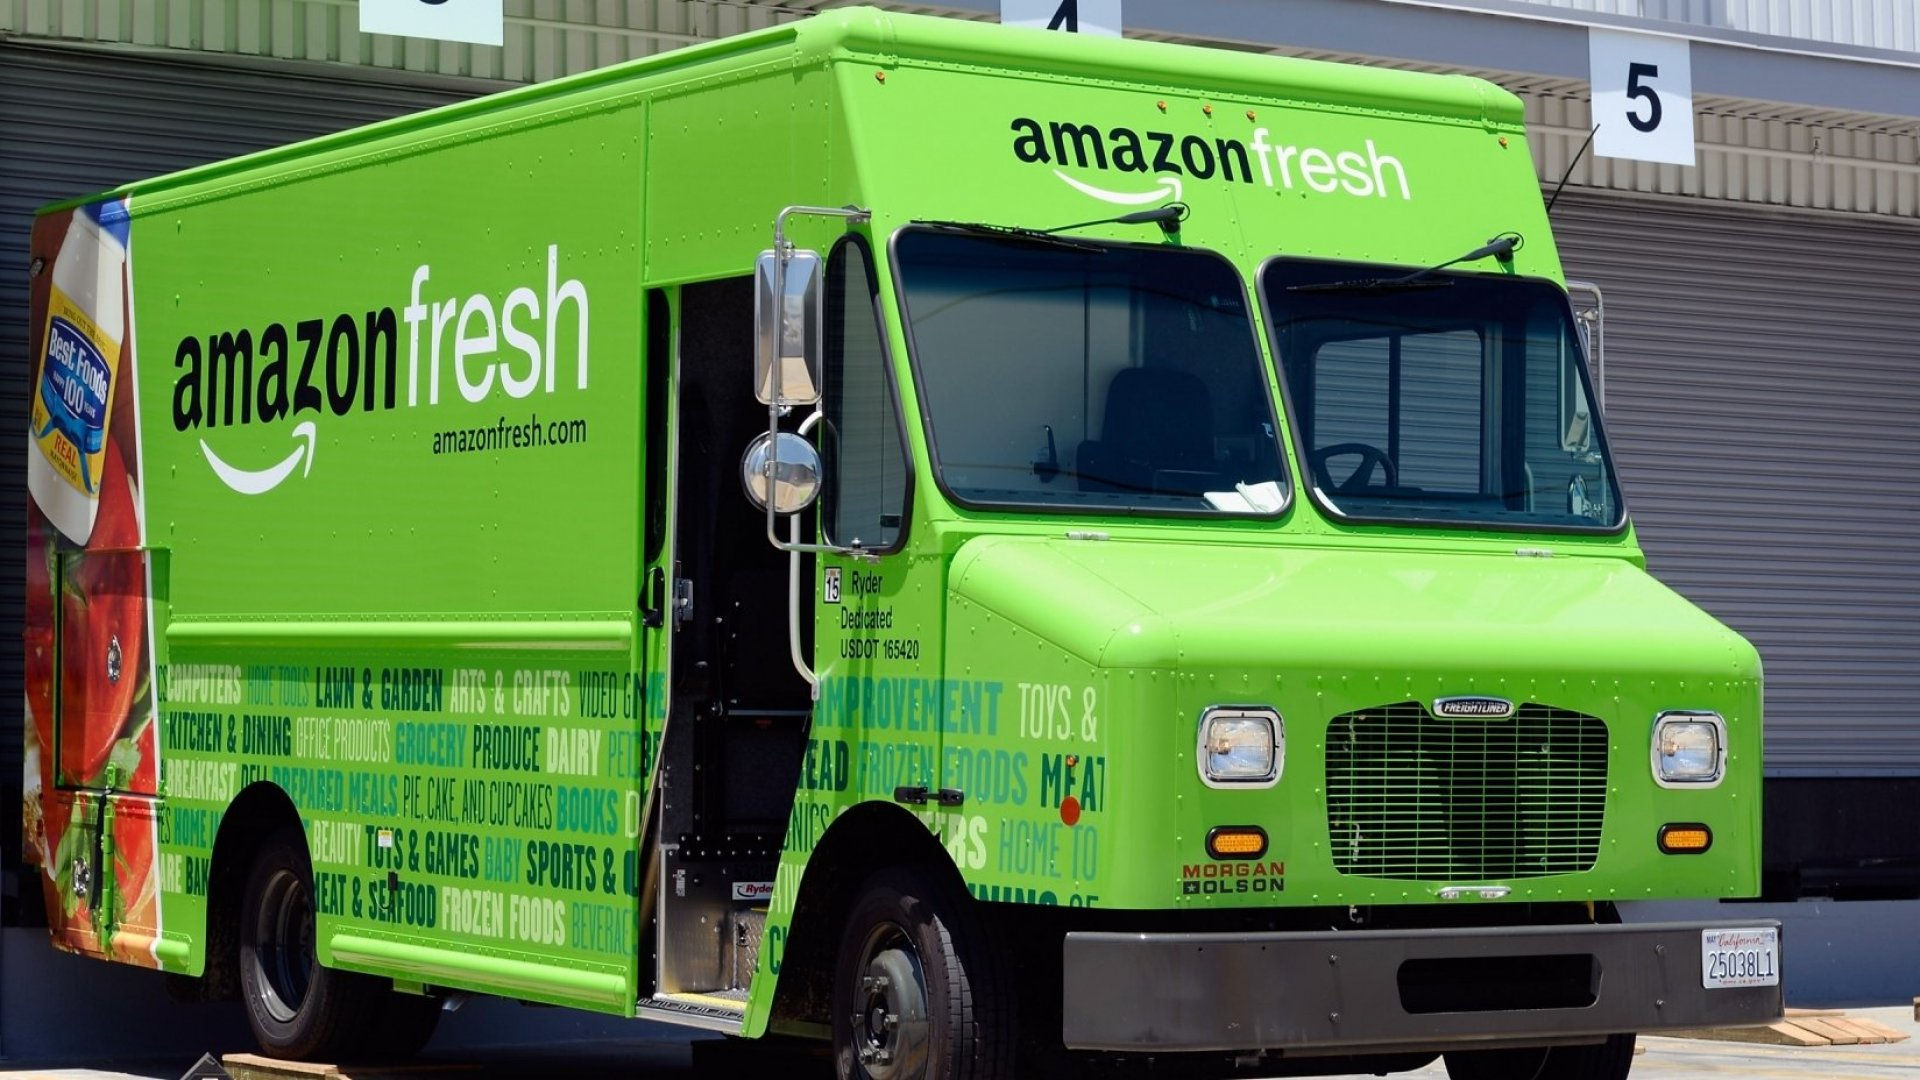 Amazon Could Open up to 2,000 Grocery Stores